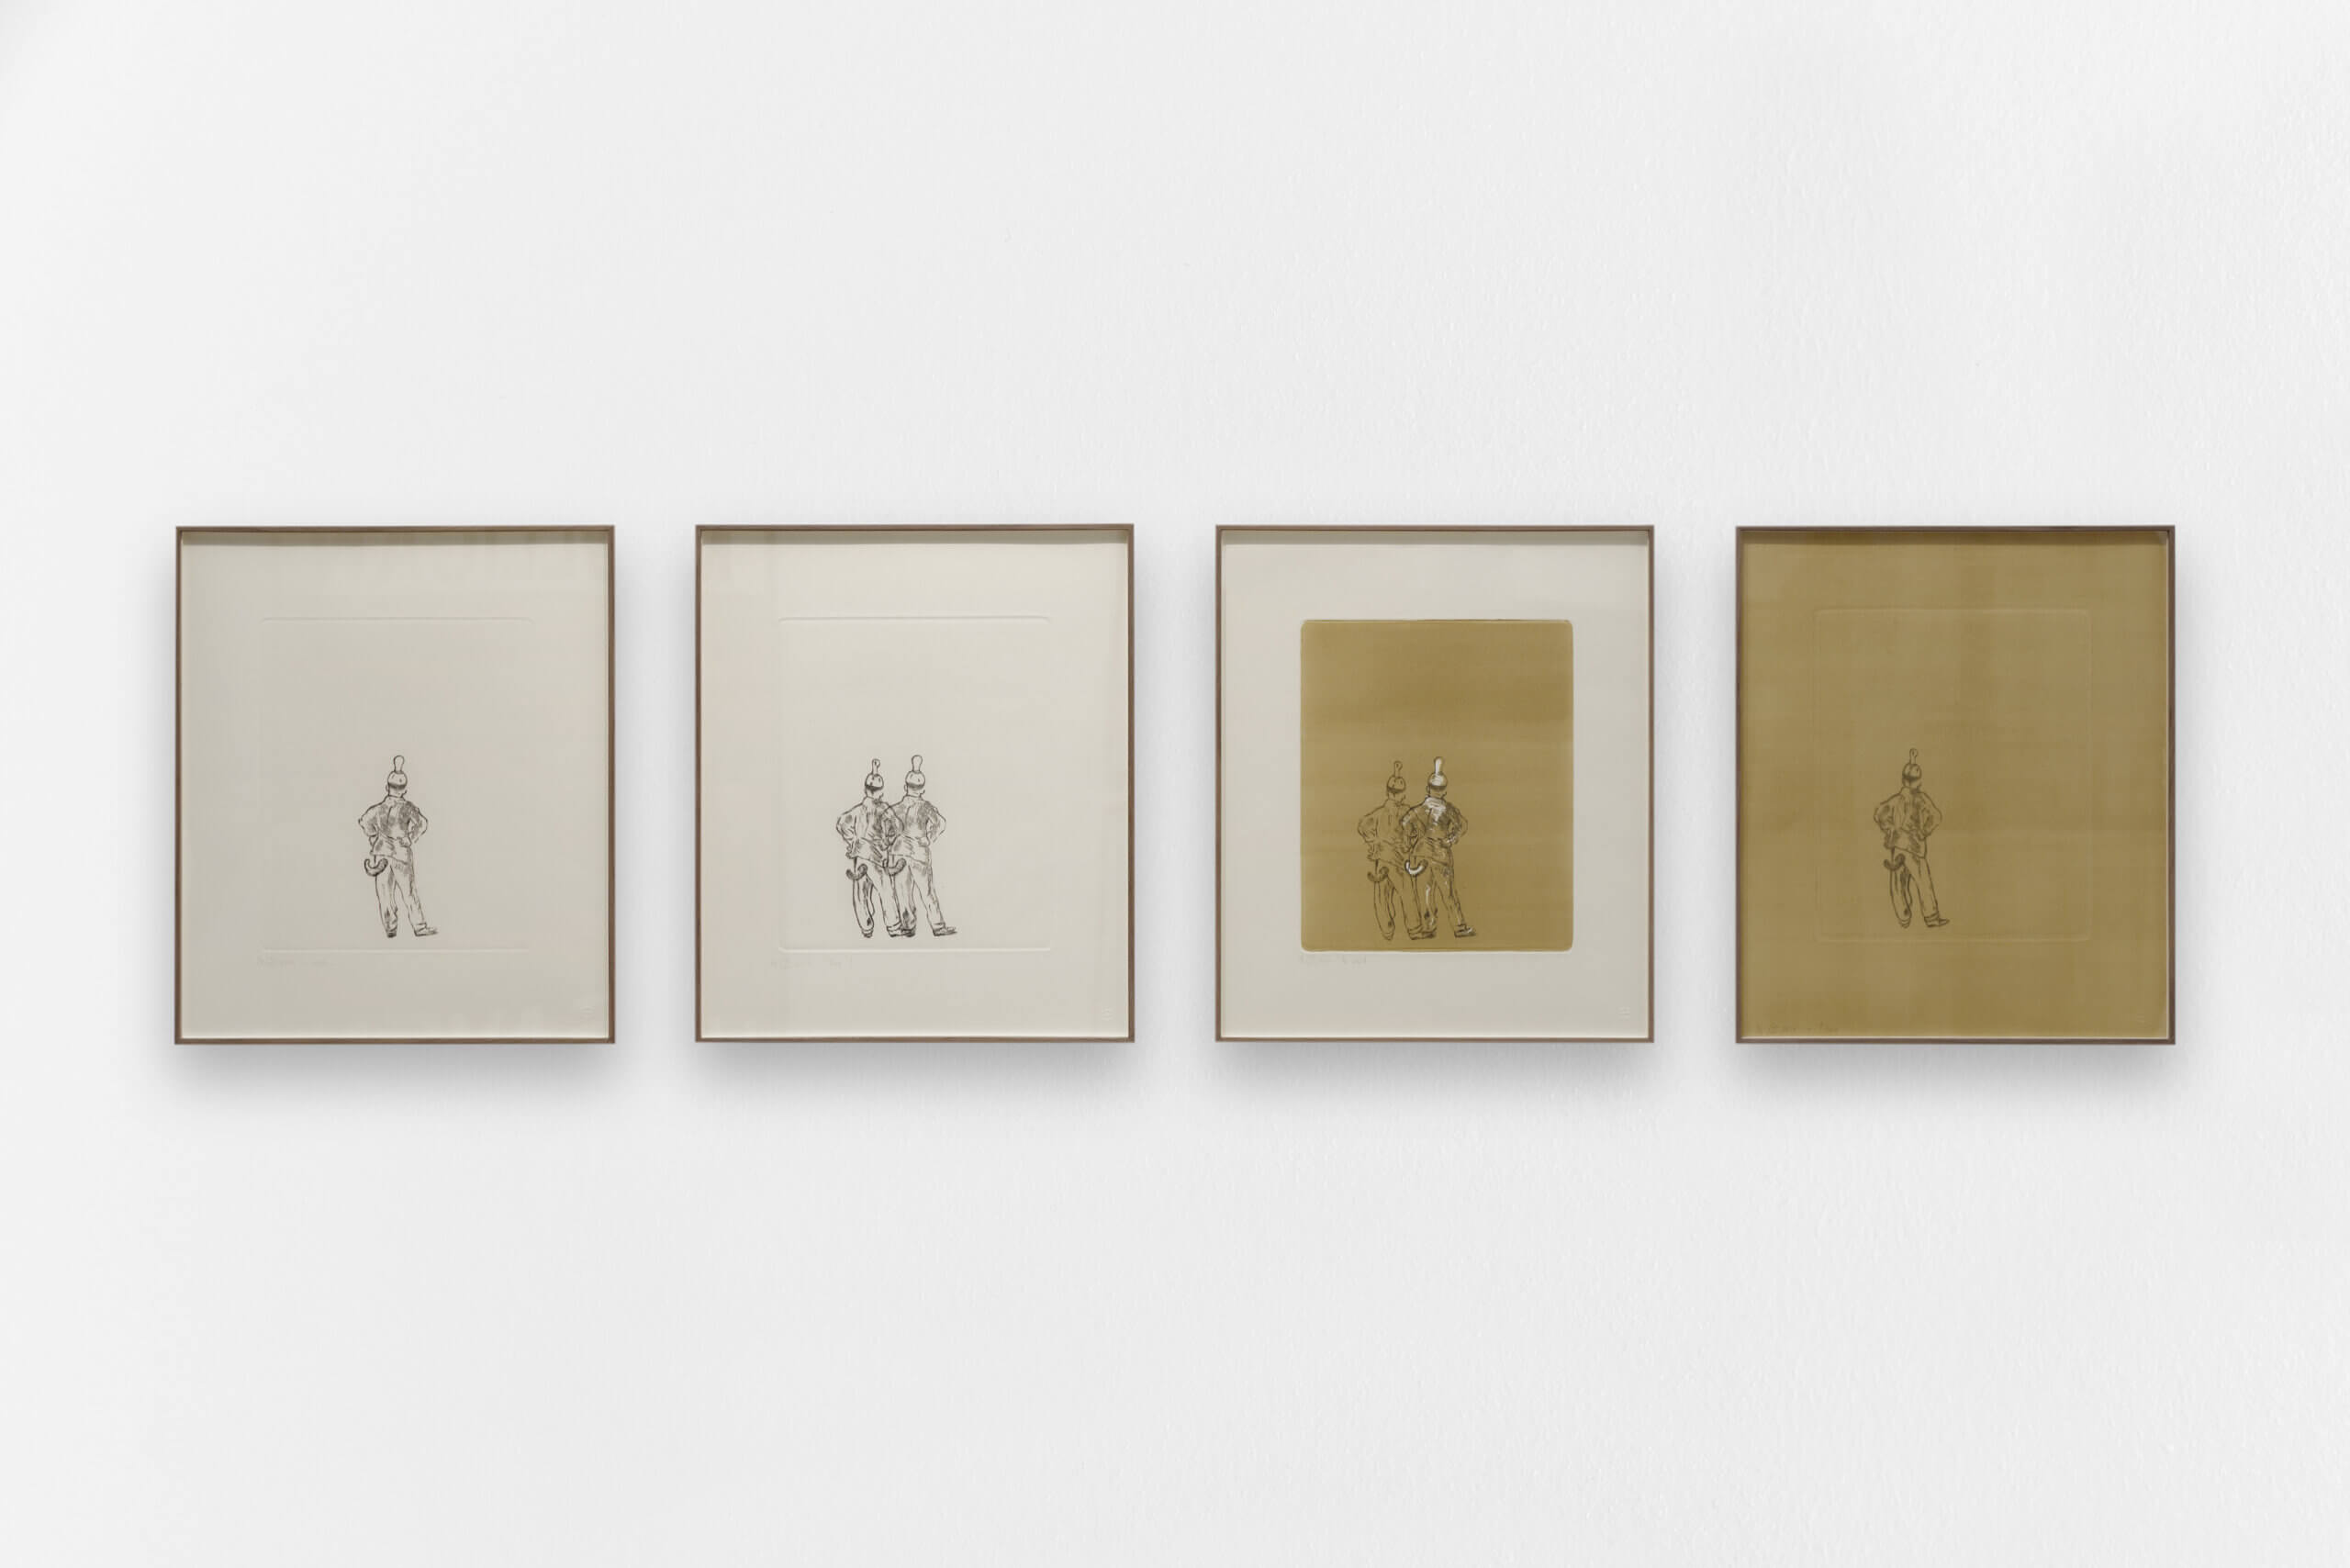 ANA JOTTA. And, Then I, He said, Then, 2016 – 2017 | E-ARCO EXHIBITIONS. PRESENTATION #2: Figures and Prefigurations | ProjecteSD